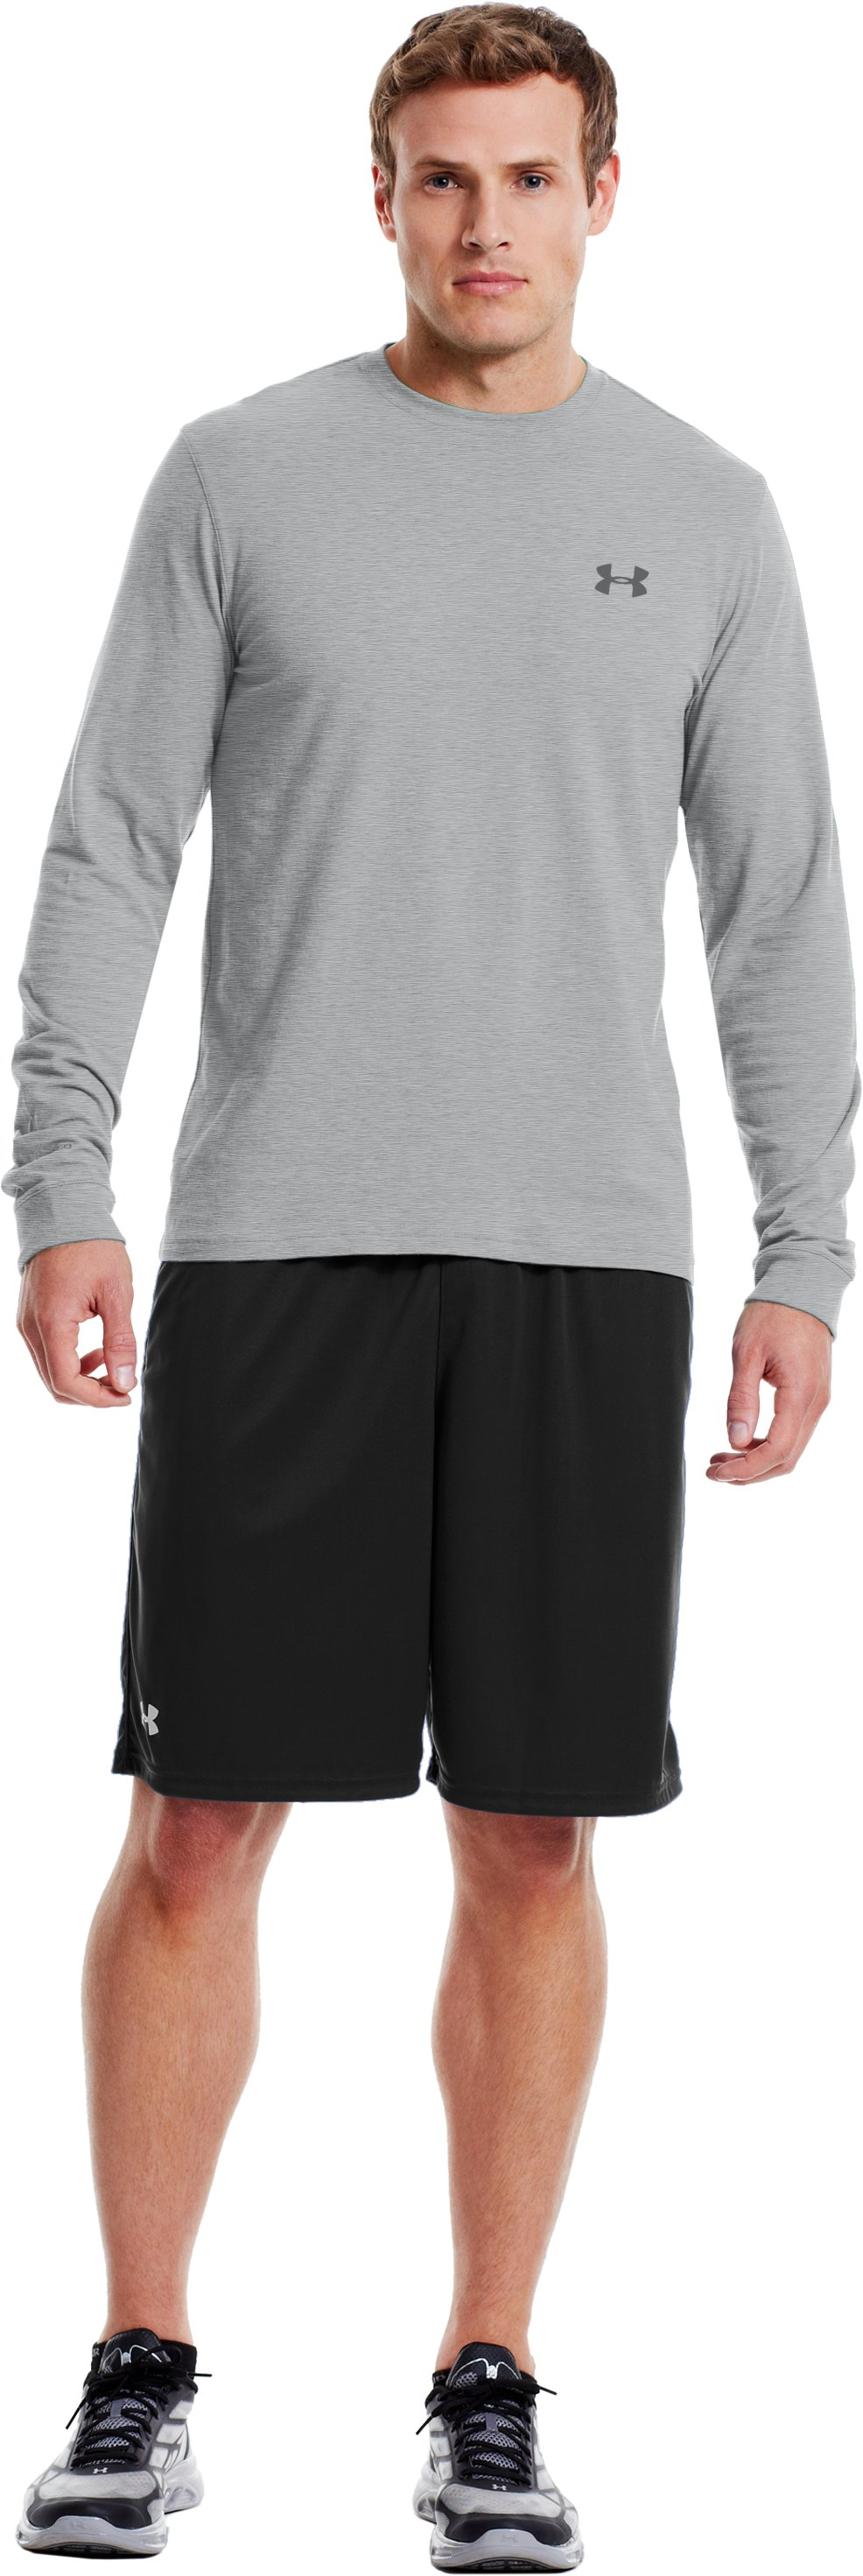 Men's UA Charged Cotton® Long Sleeve T-Shirt, True Gray Heather, Front